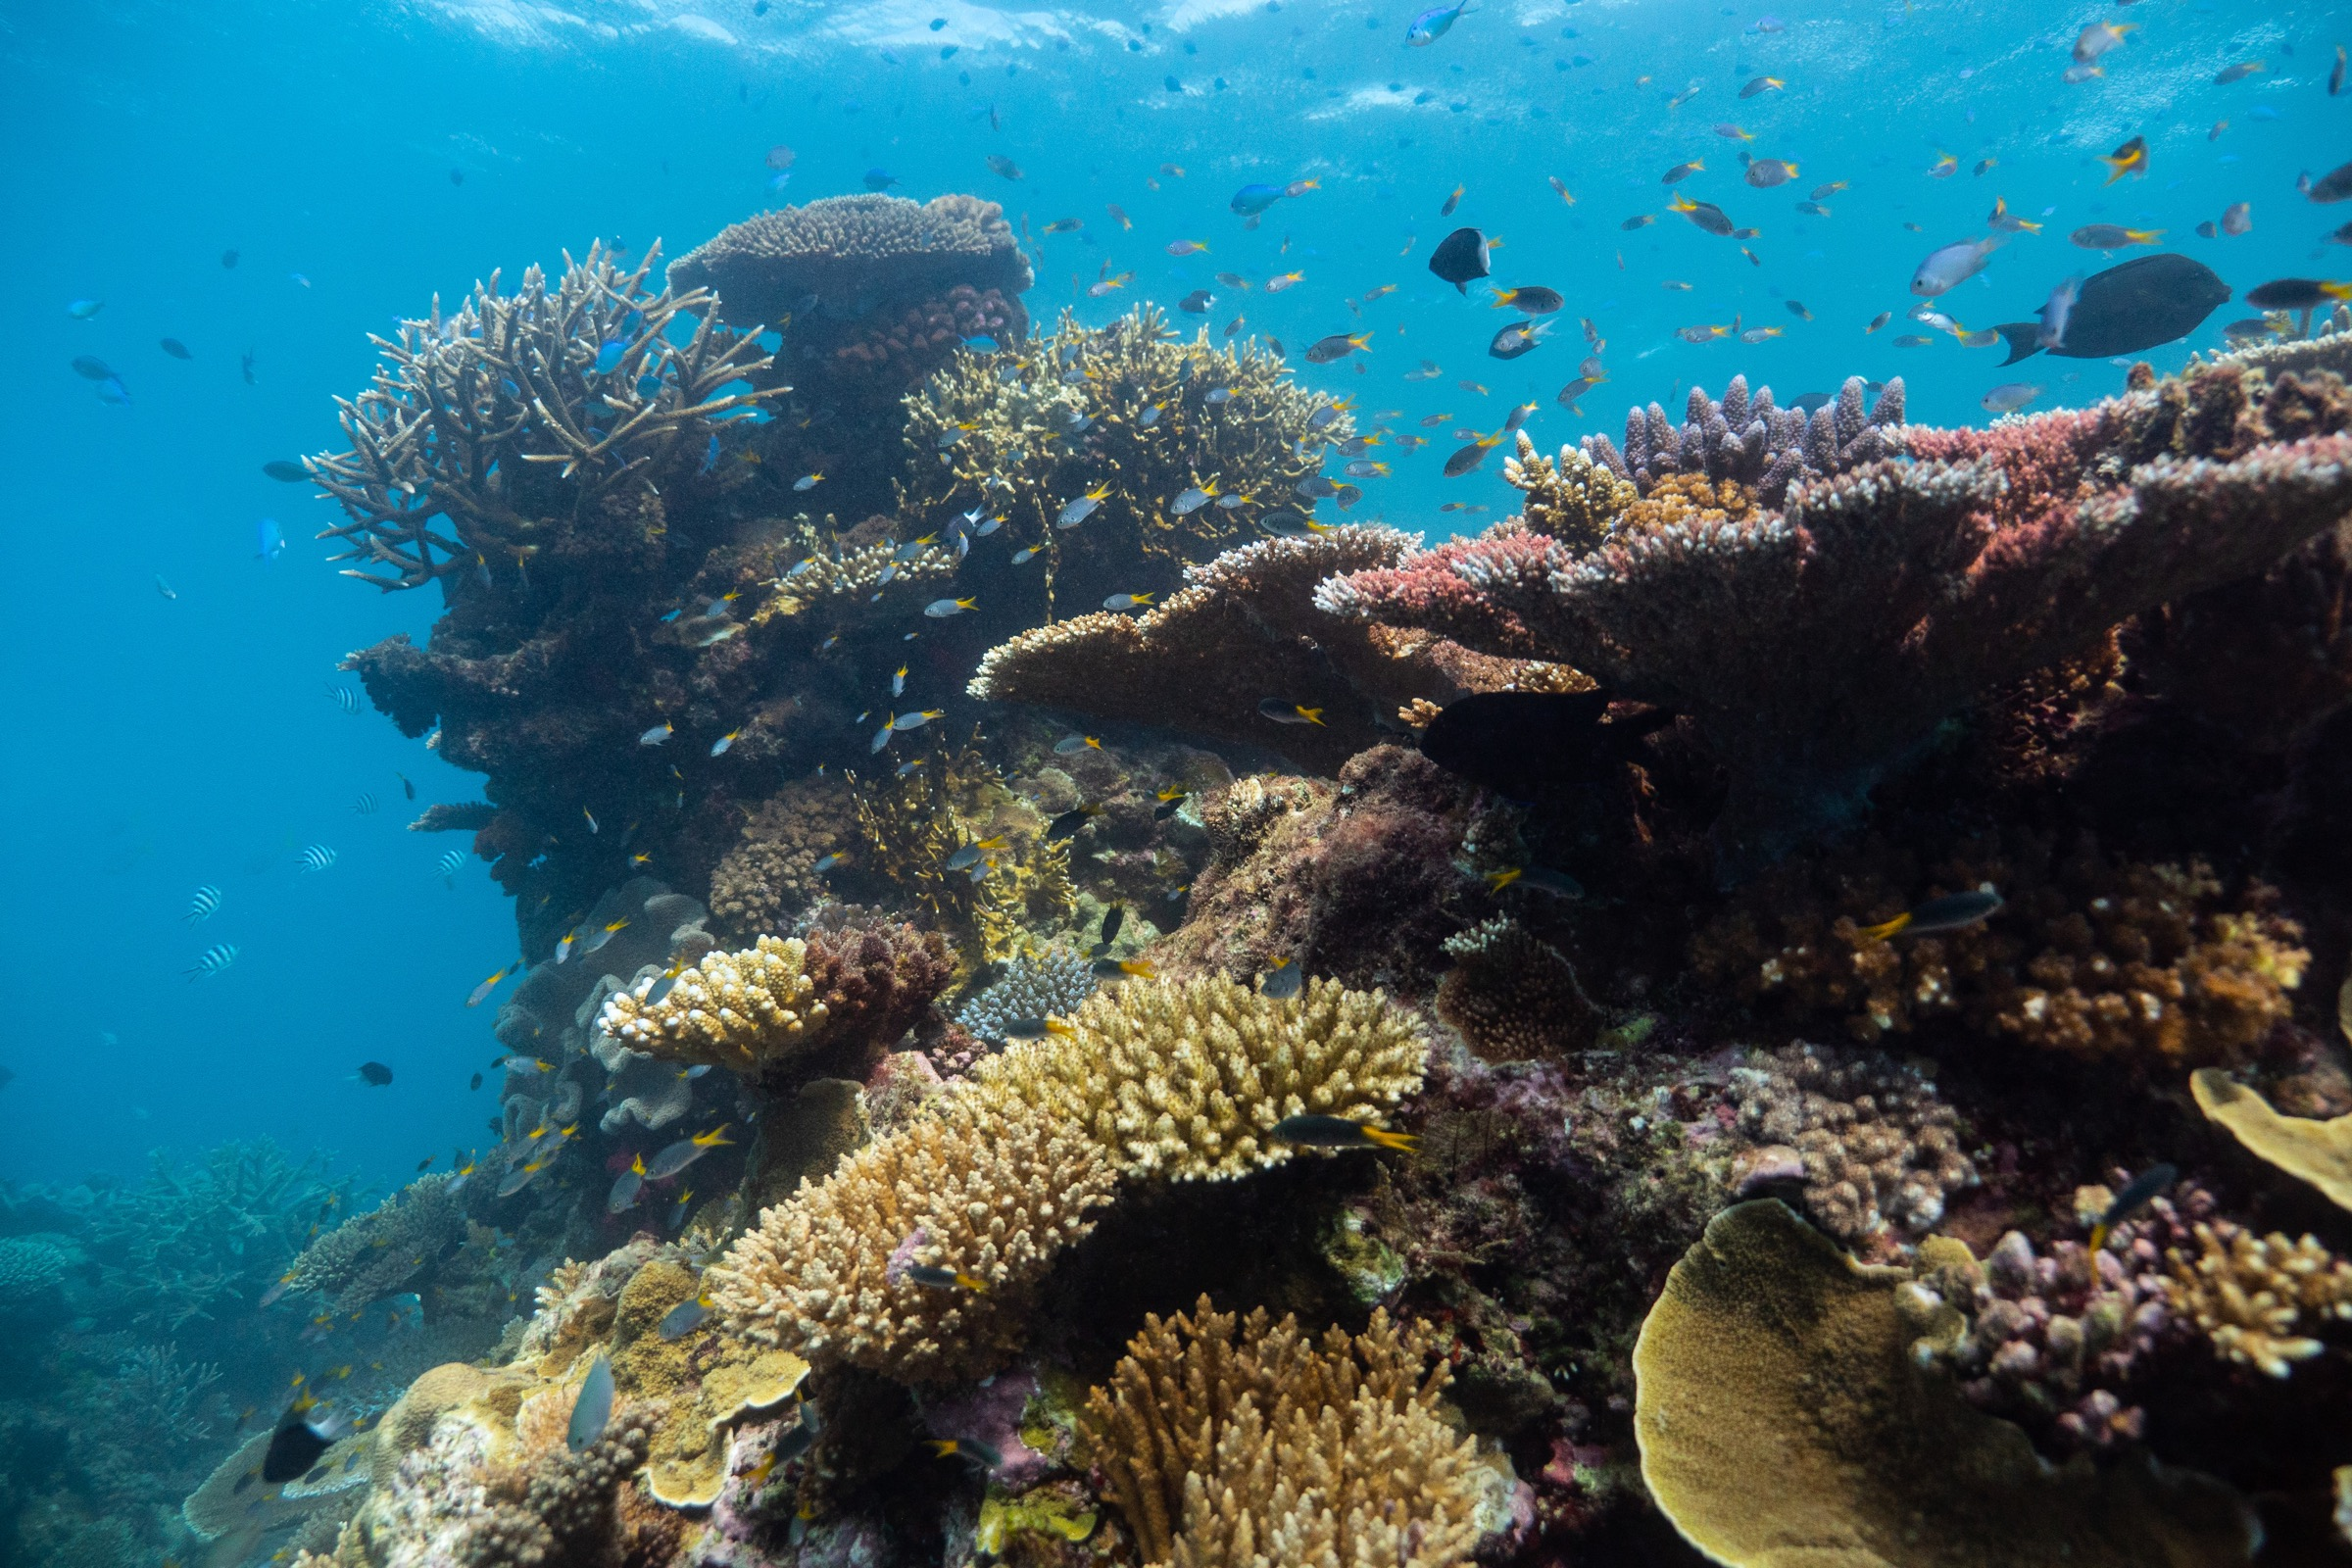 When coral reefs are intact and healthy, they provide habitat for countless ocean creatures.